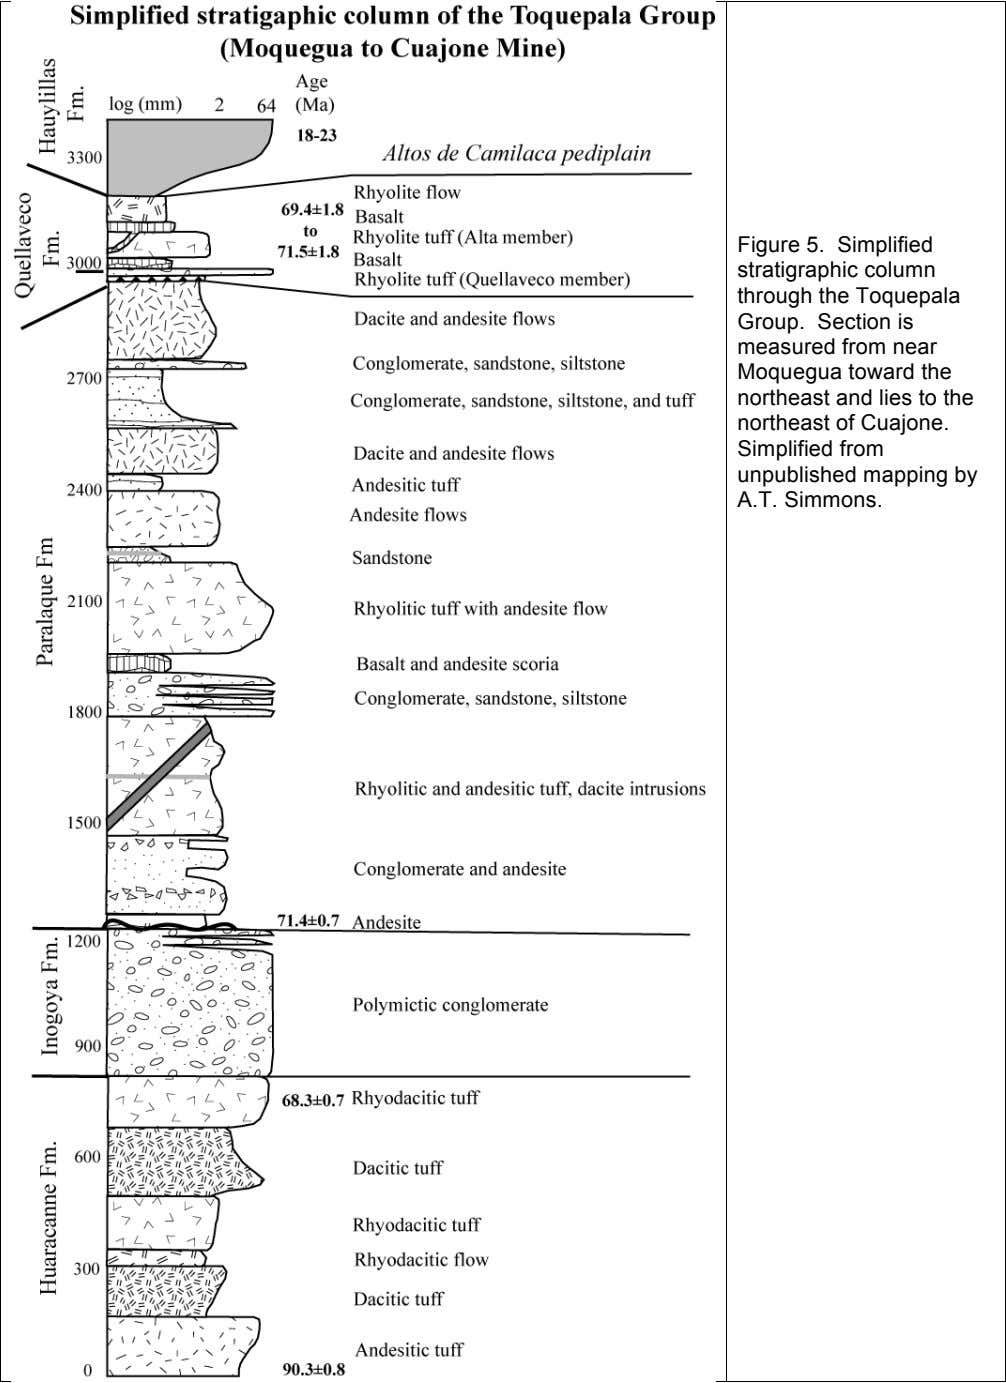 Figure 5. Simplified stratigraphic column through the Toquepala Group. Section is measured from near Moquegua